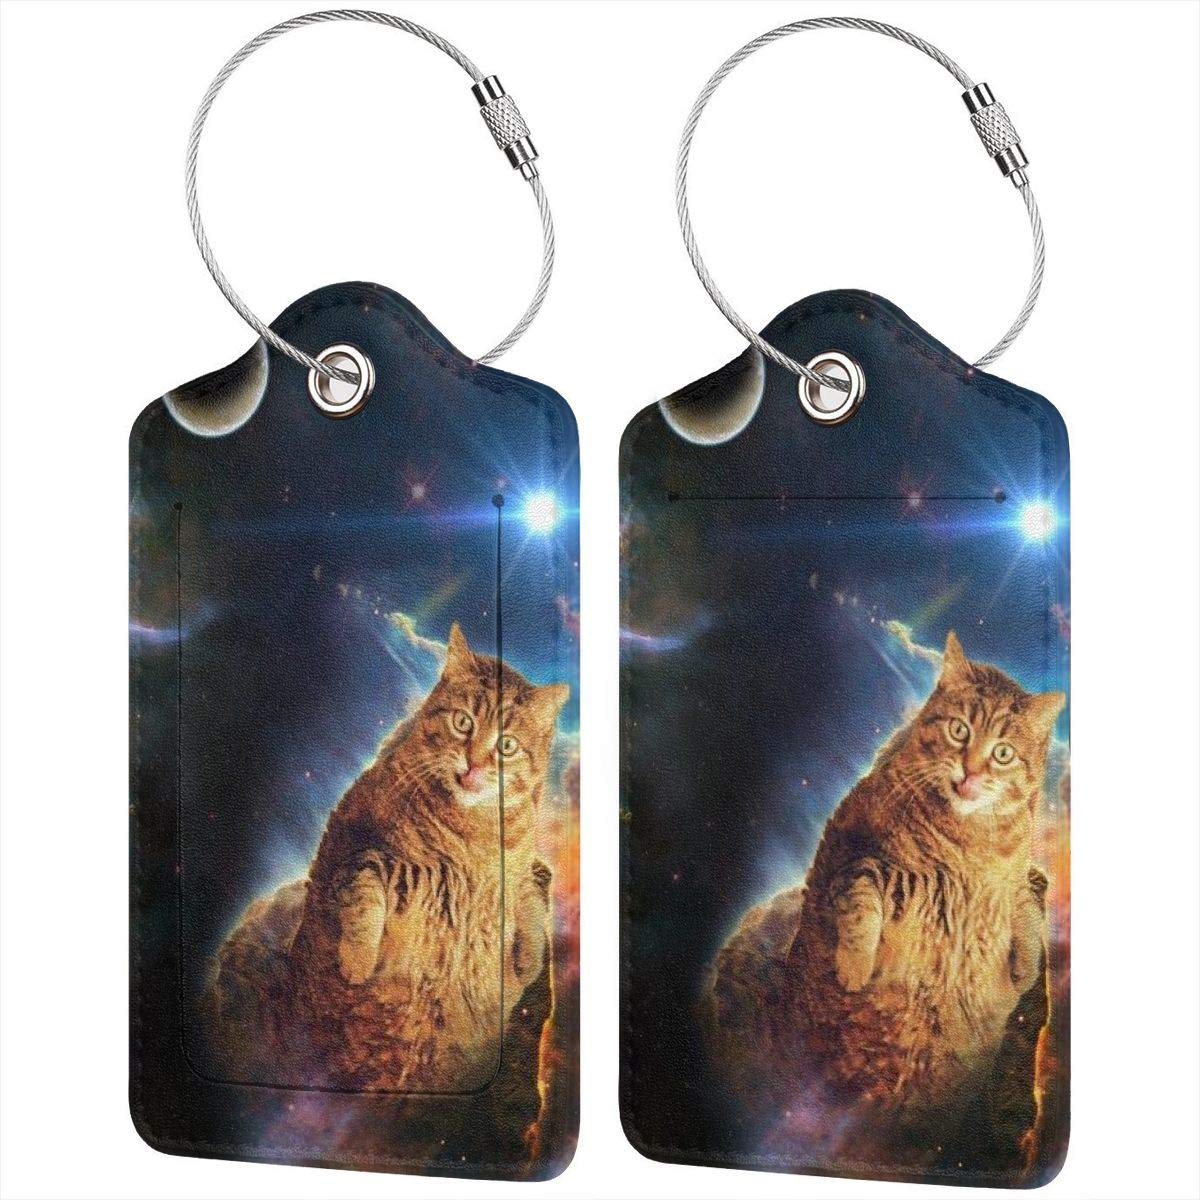 Luggage Tags Leather Case Suitcase Label With Stainless Steel Loop Bag Baggage Tote Tags Travel Tags Cats From Outer Space set of 4